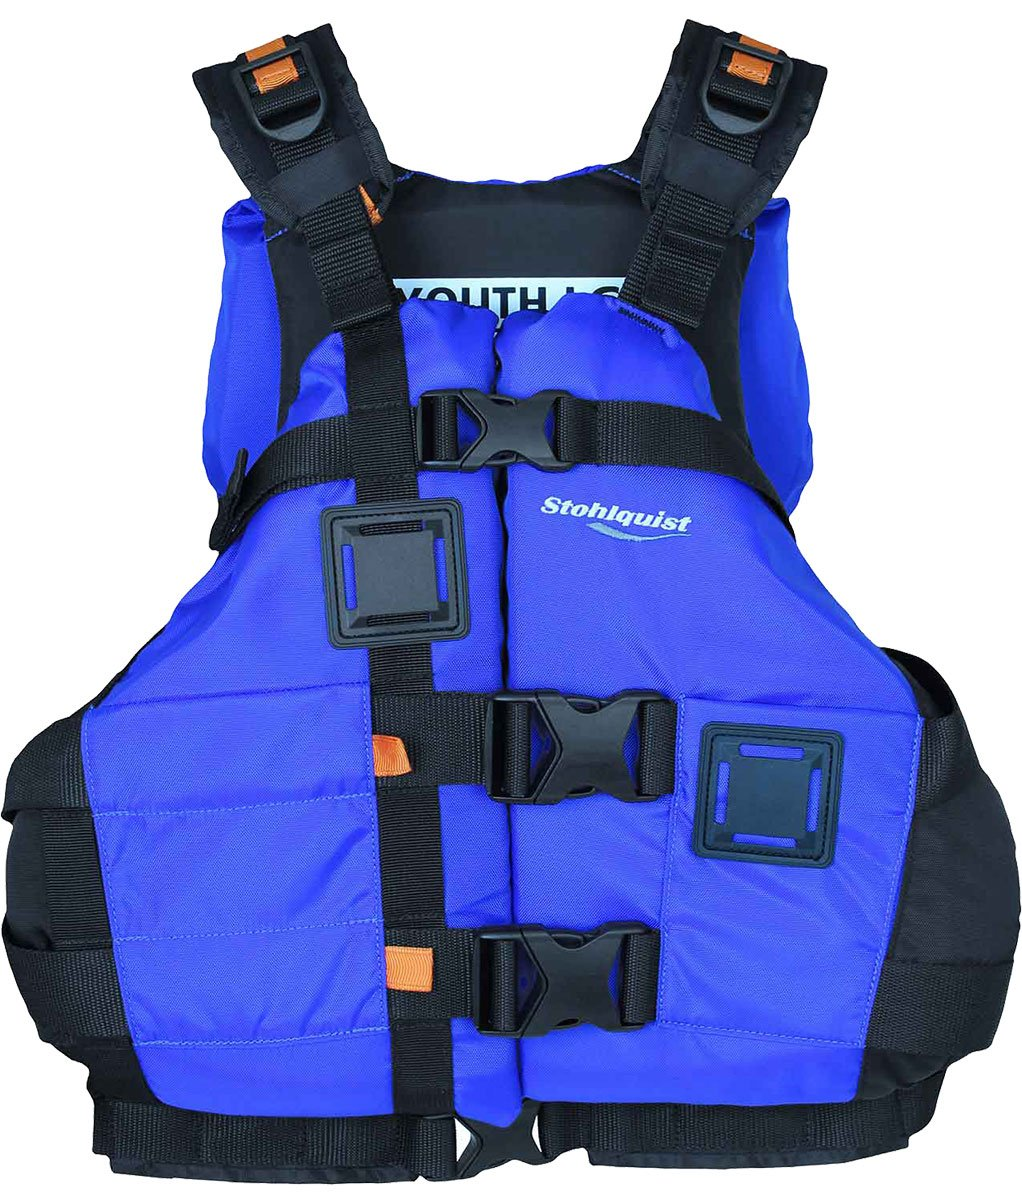 大特価 Canyon X-Small Youth Lifejacket Youth Youth Youth Large/Adult X-Small ロイヤルブルー B01E9NXY7O, 株式会社ミヤタコーポレーション:05c97e41 --- a0267596.xsph.ru